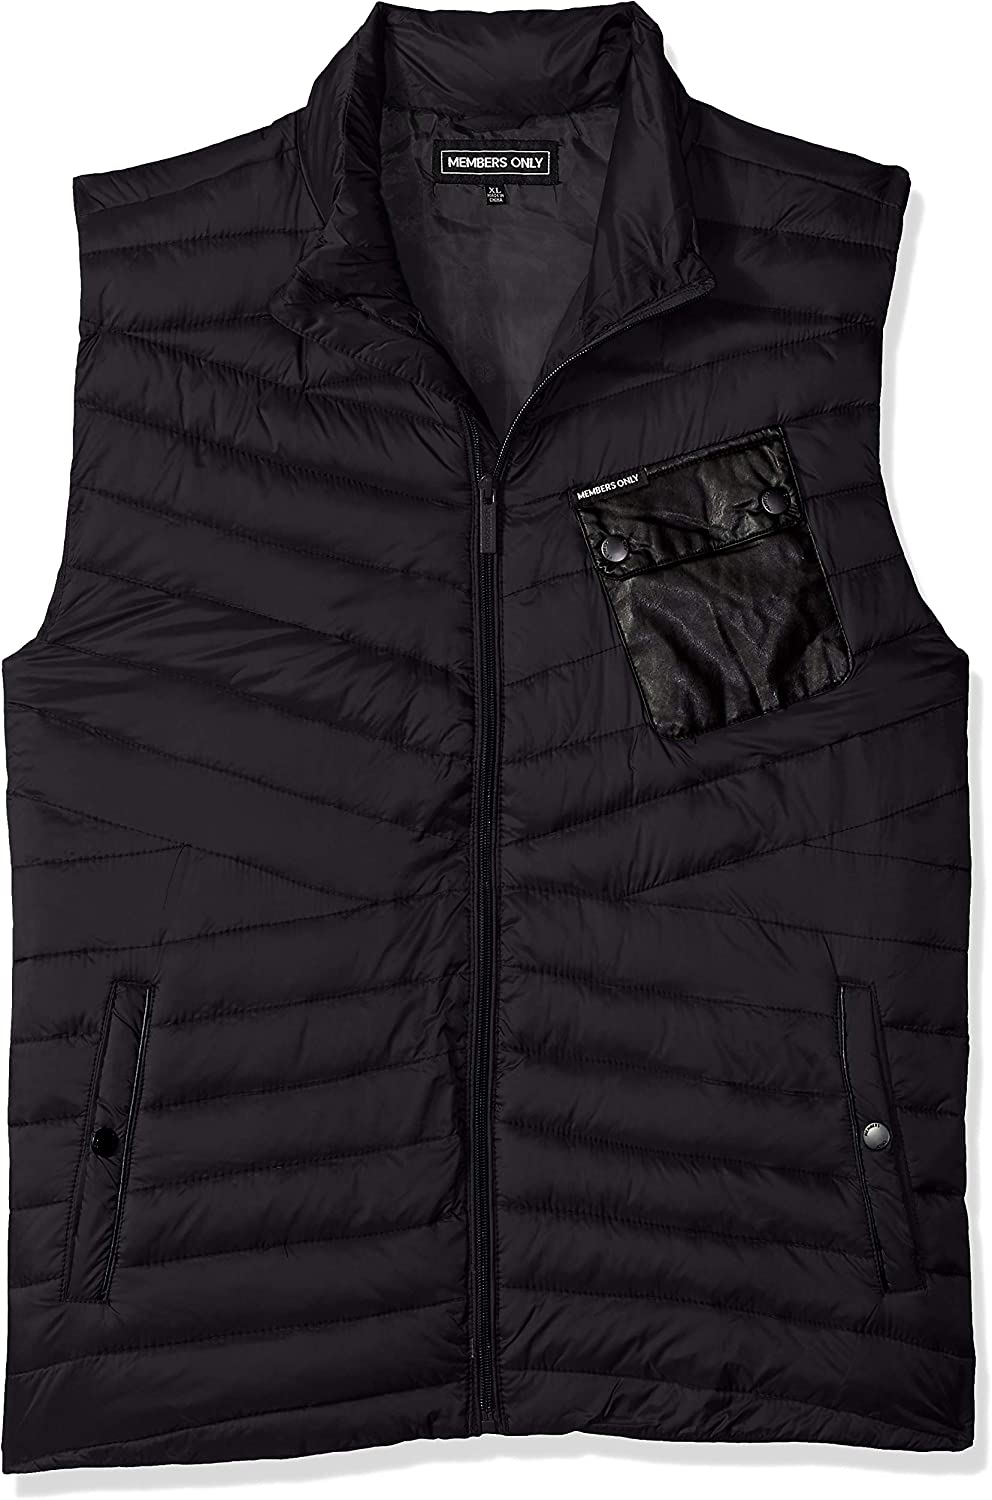 Members Only Mens Puffer Vest